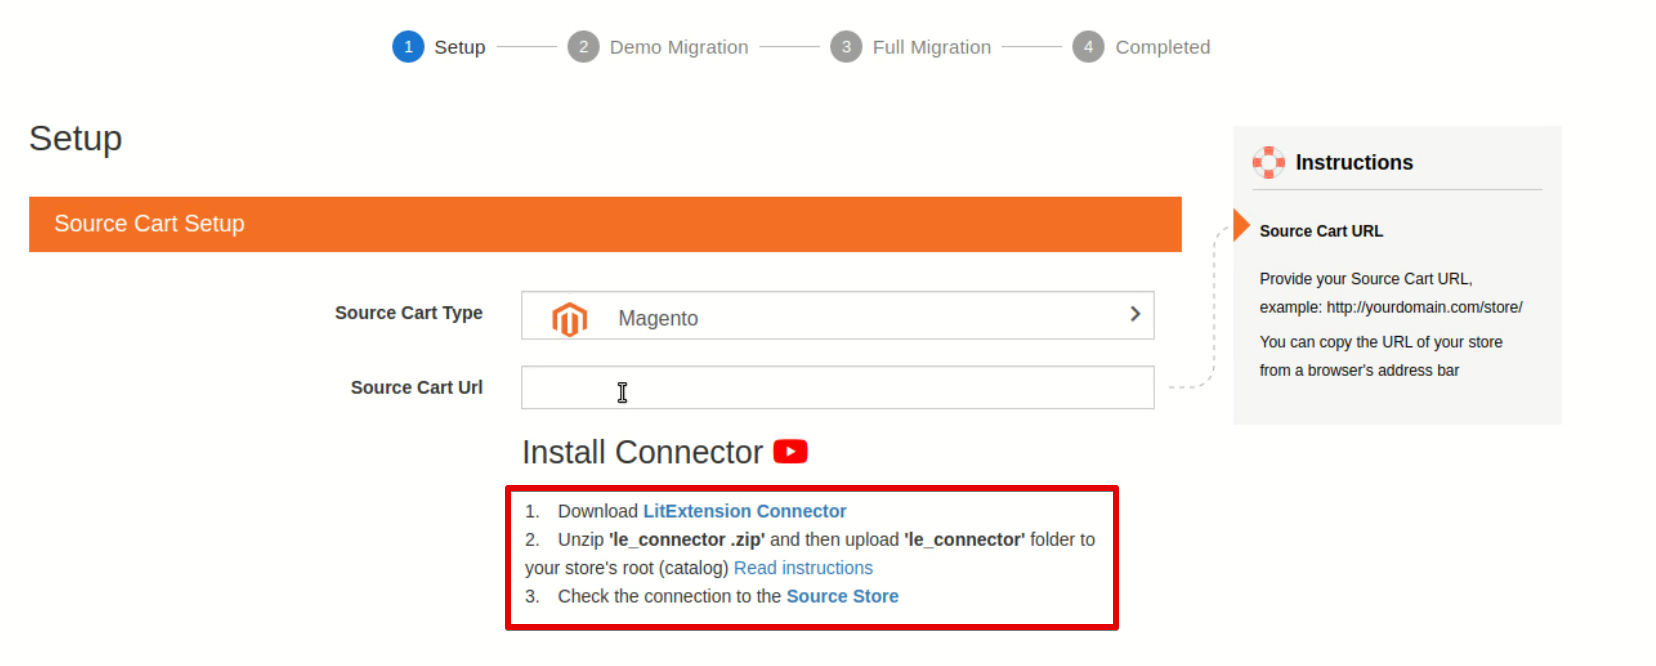 Download LitExtension Connector